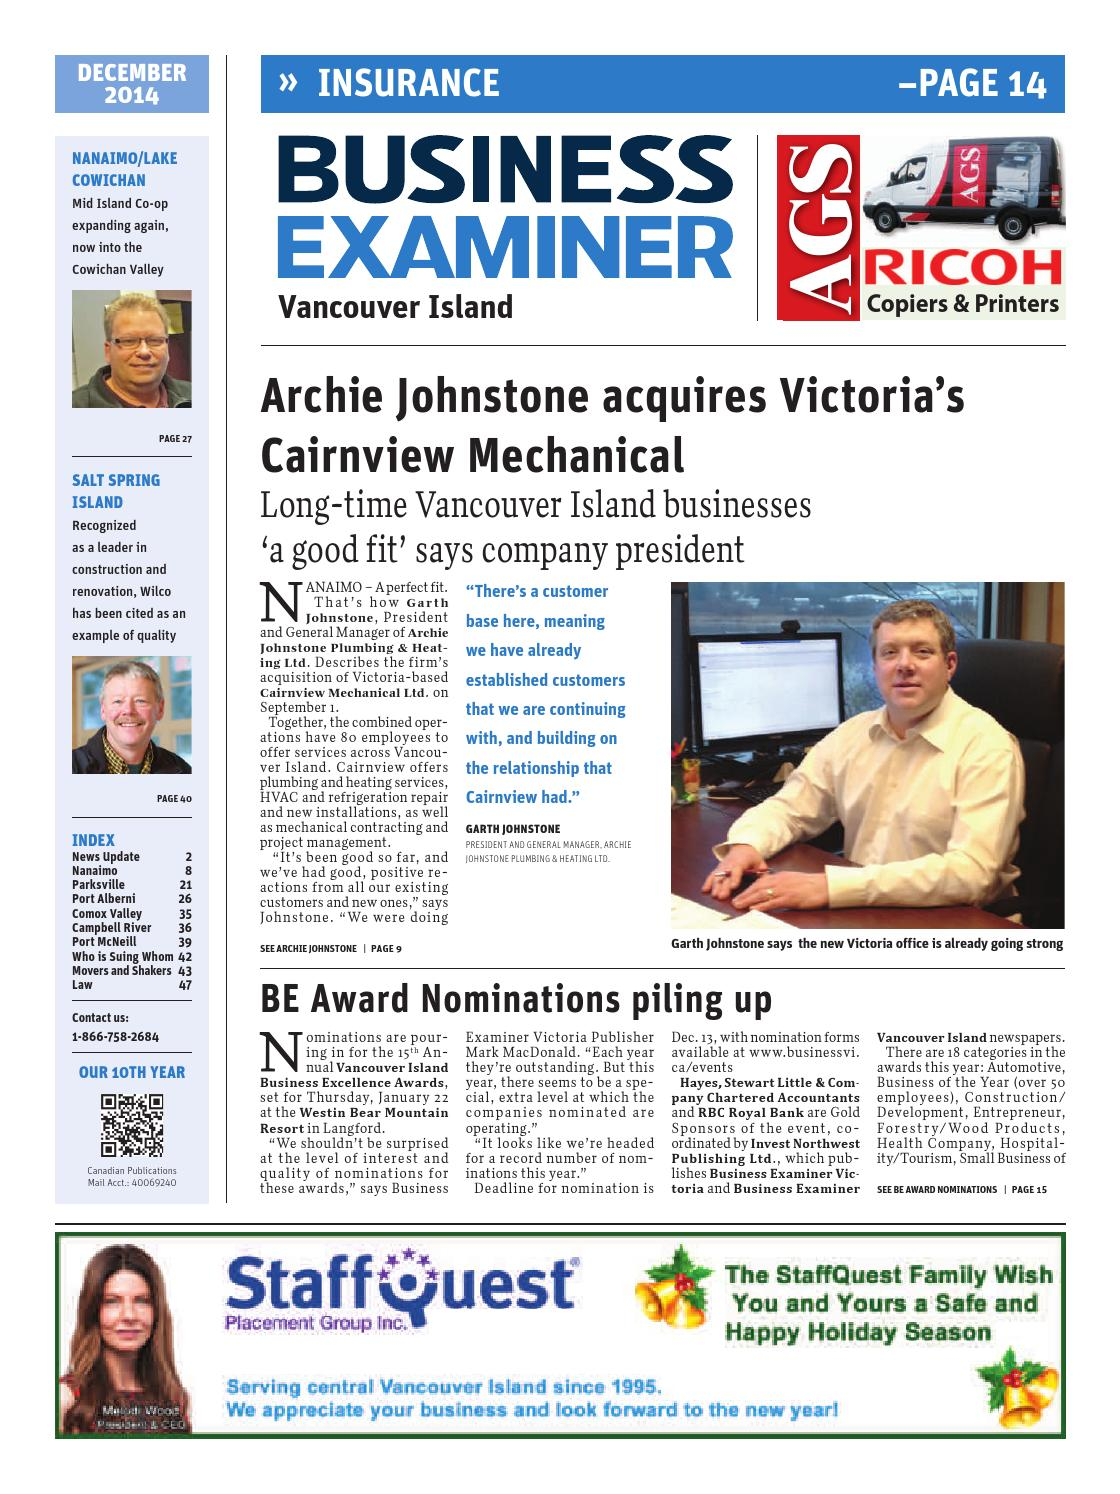 Business Examiner Vancouver Island - December 2014 by Business